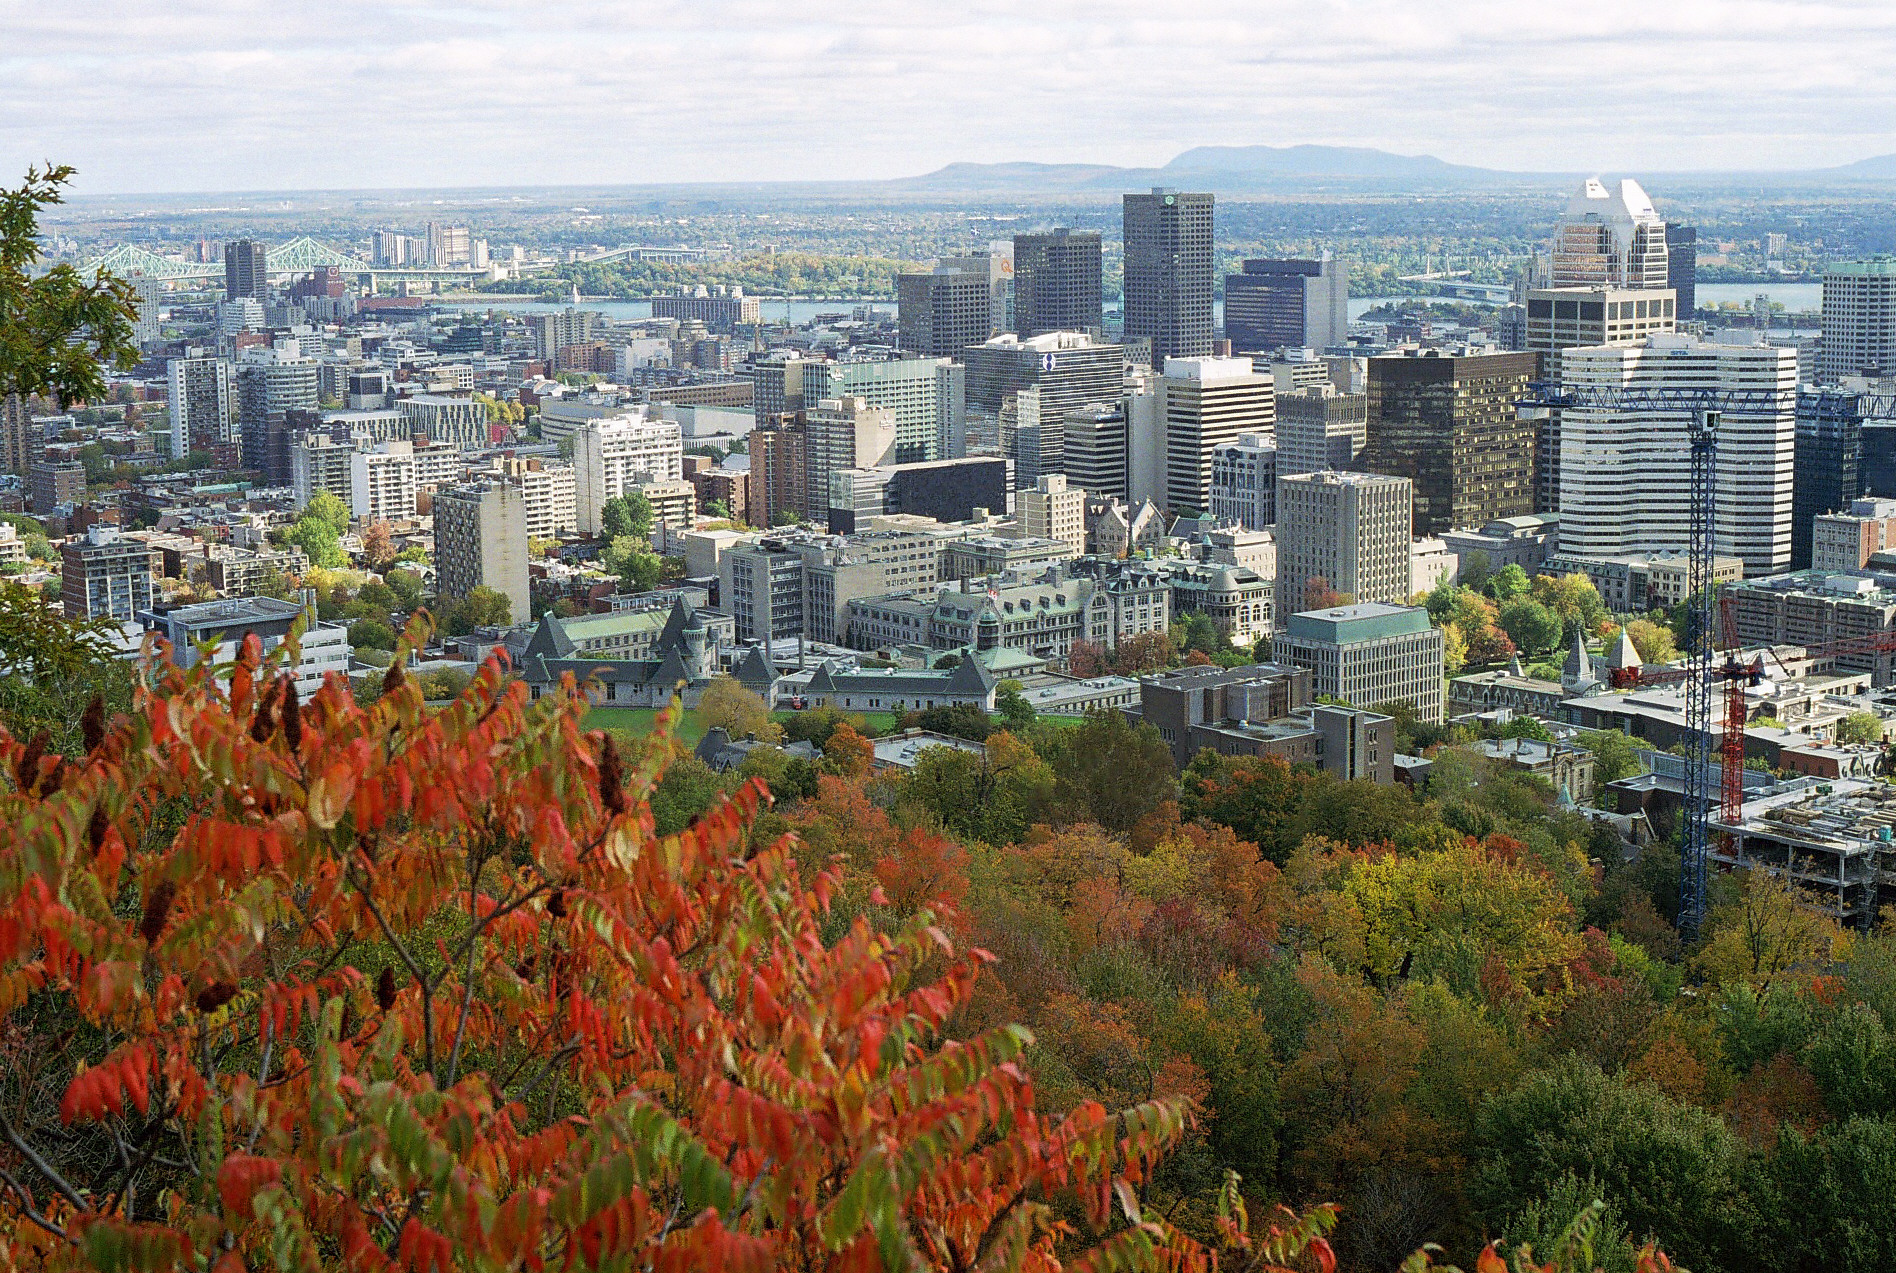 The view on Mount-Royal in fall